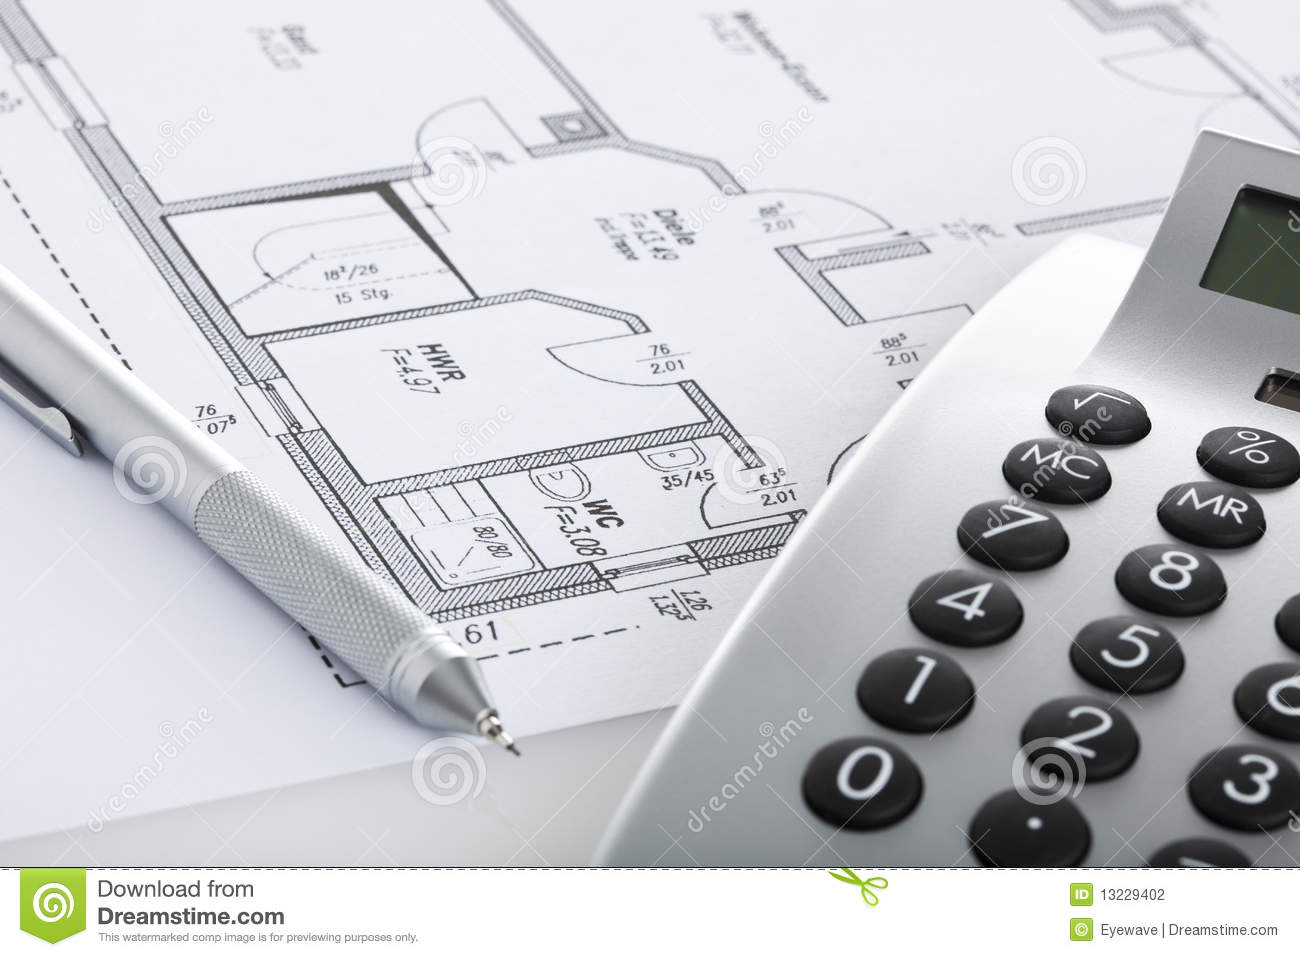 pencil and calculator on blueprint of floor plan stock